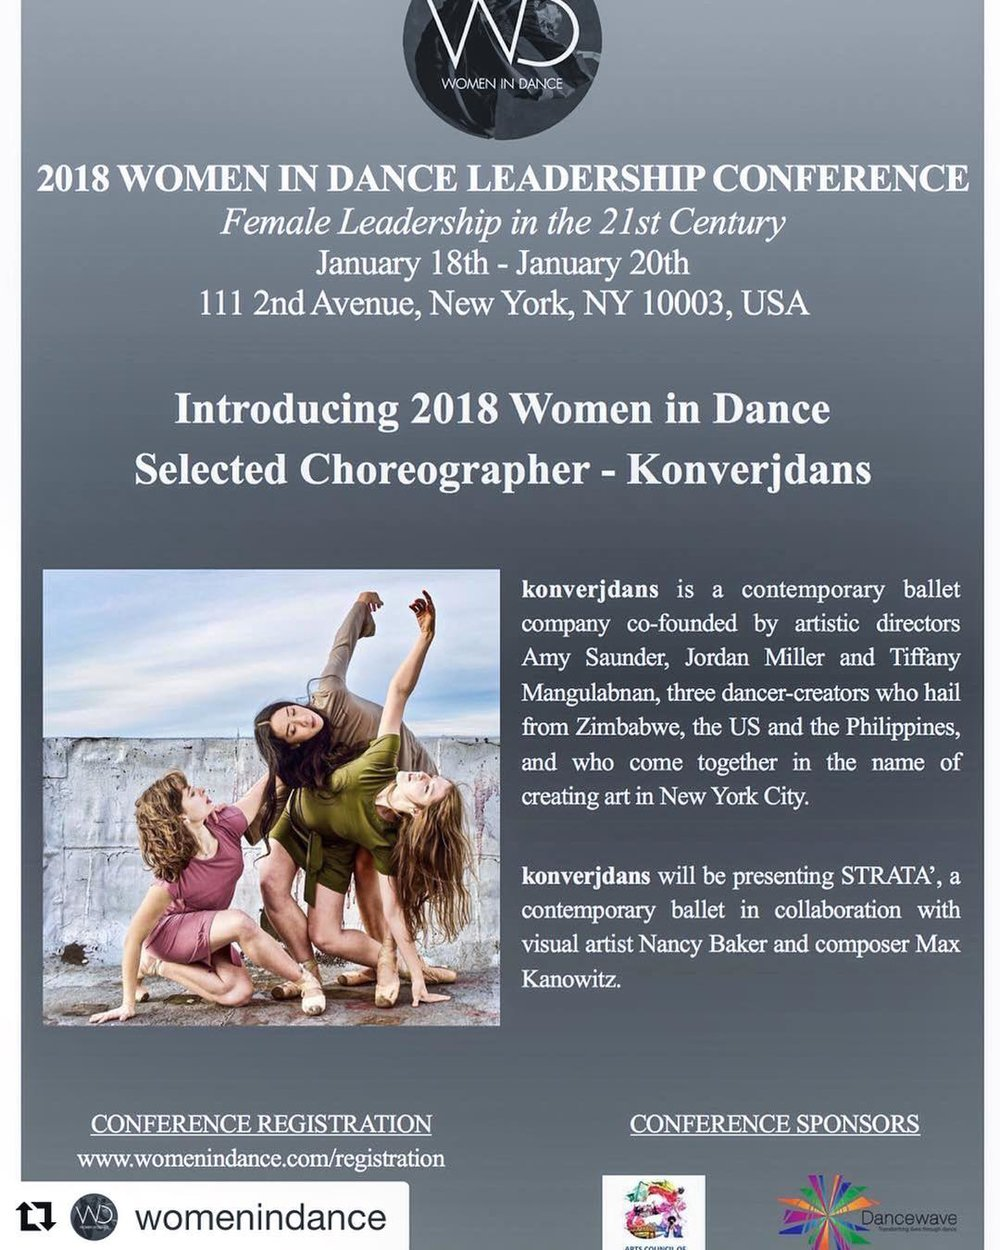 konverjdans at Women in Dance 2018